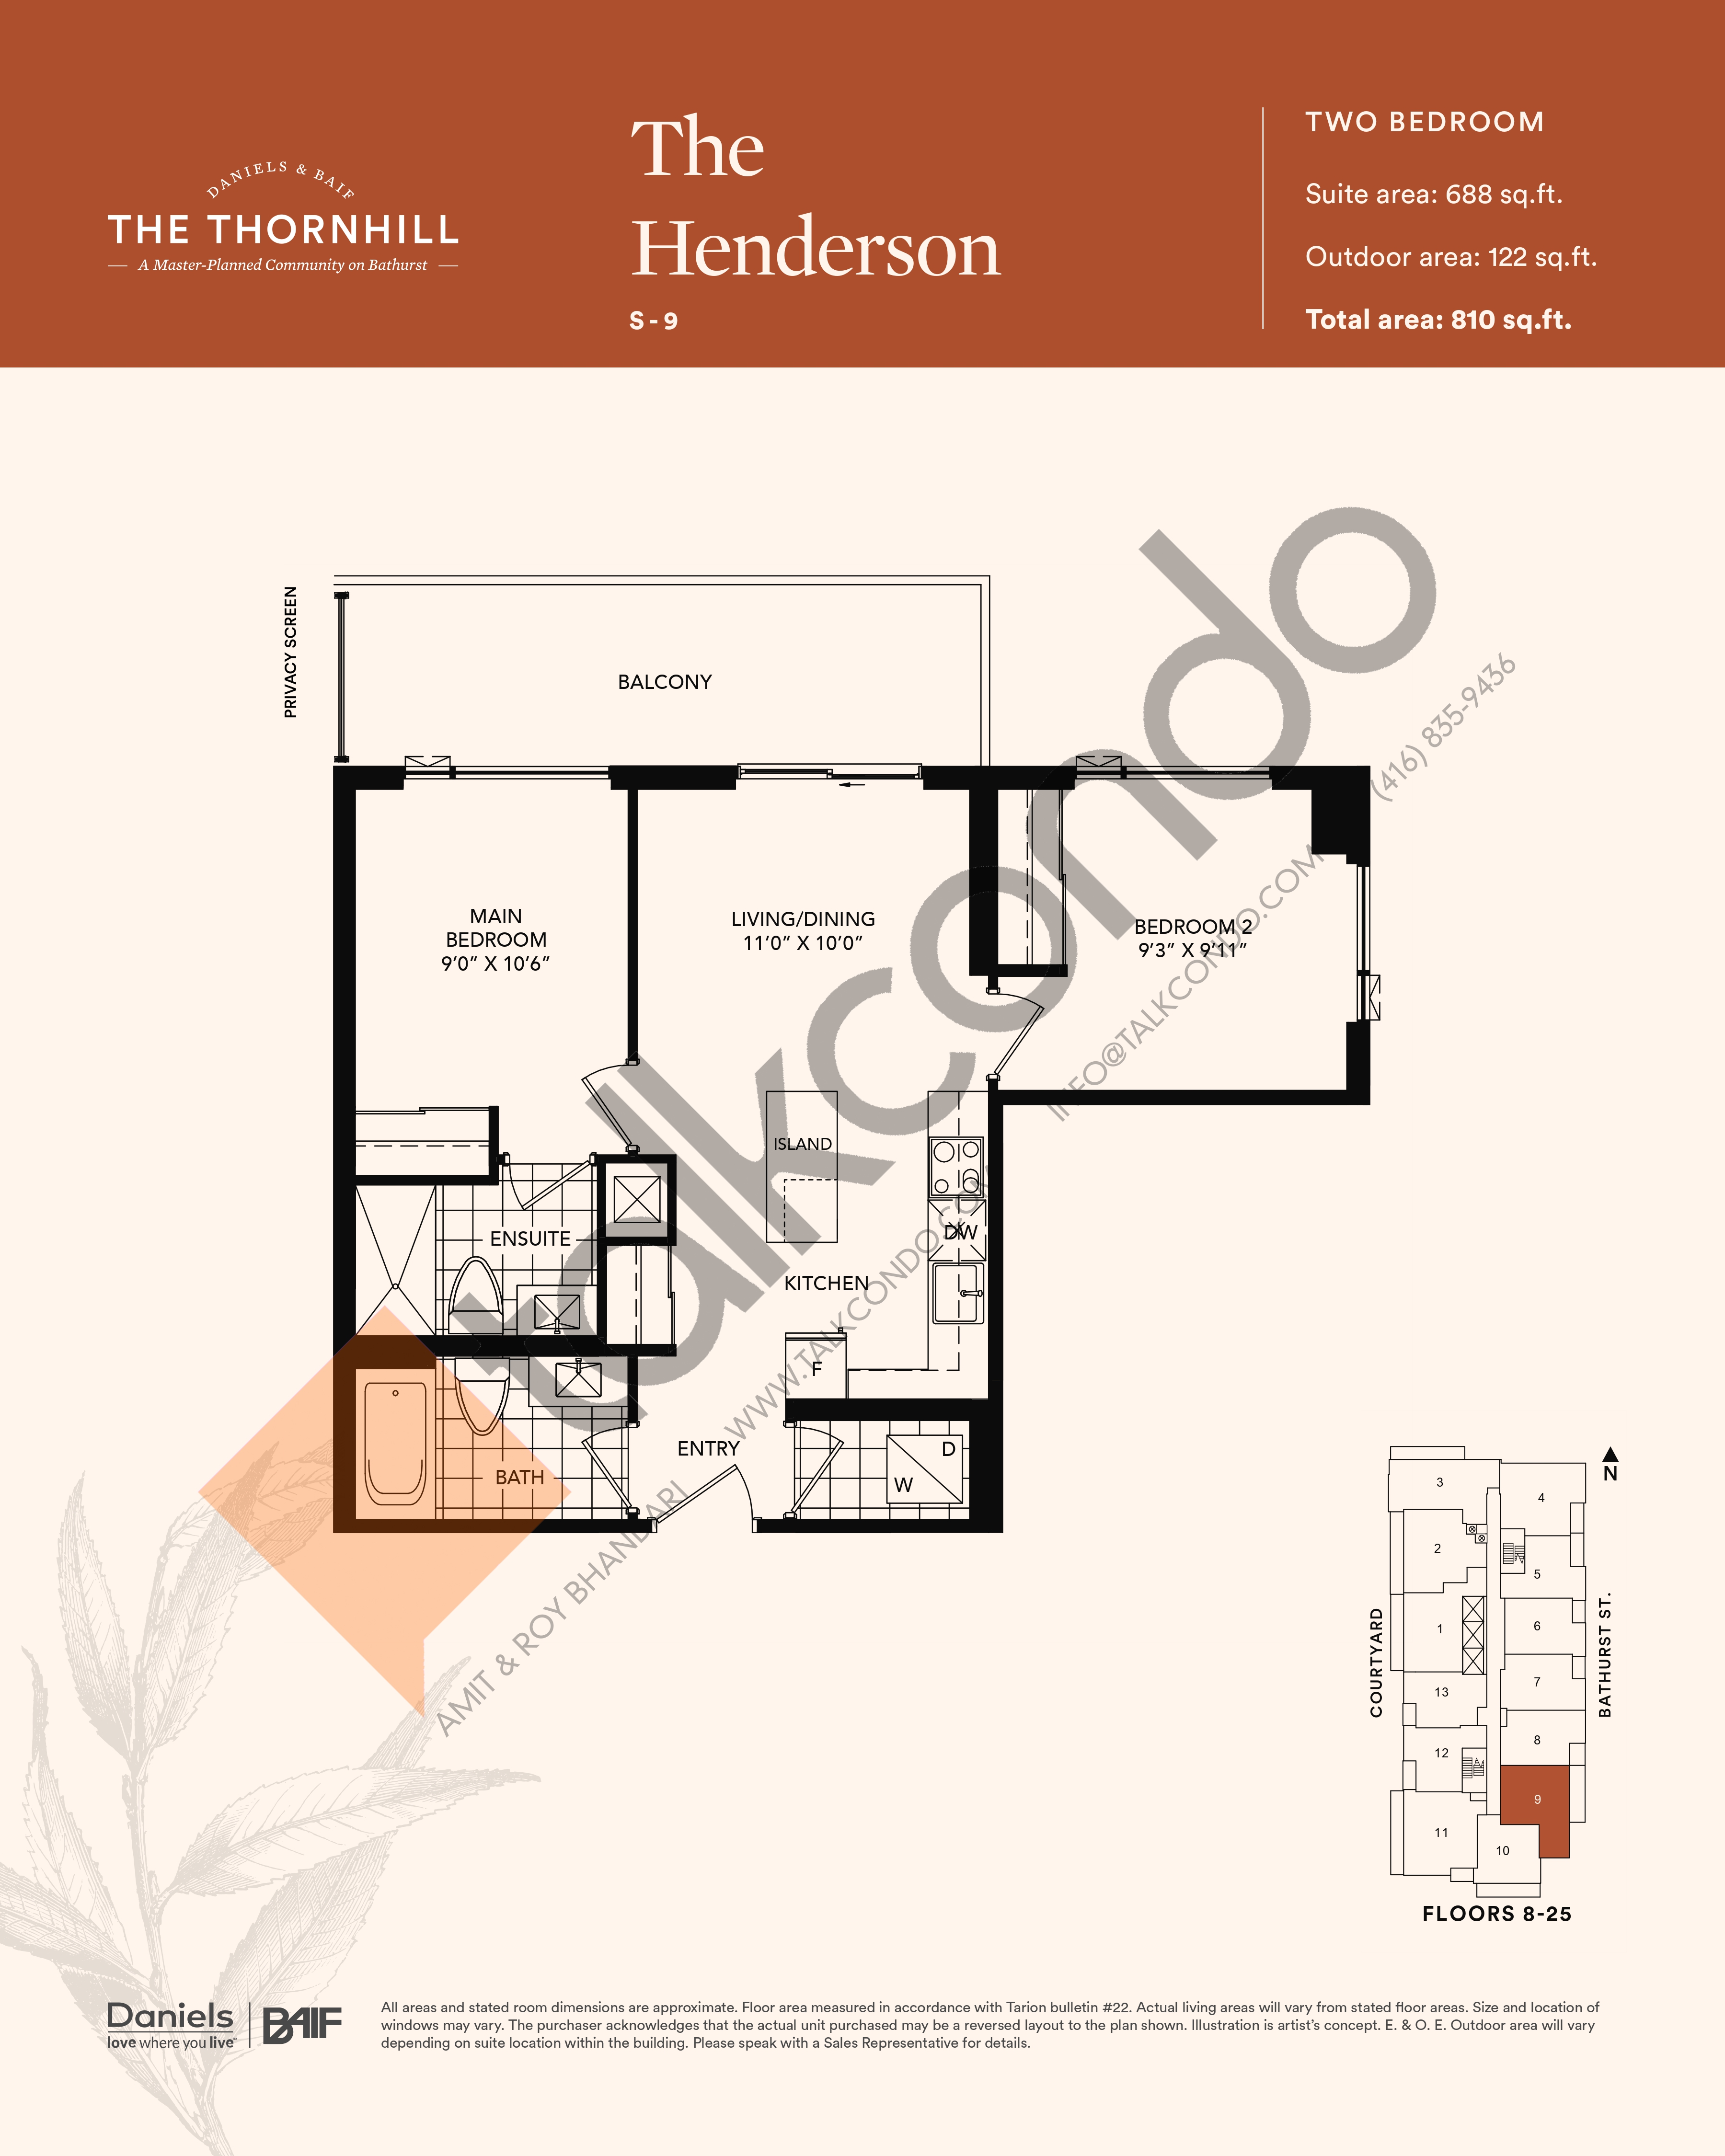 The Henderson Floor Plan at The Thornhill Condos - 688 sq.ft